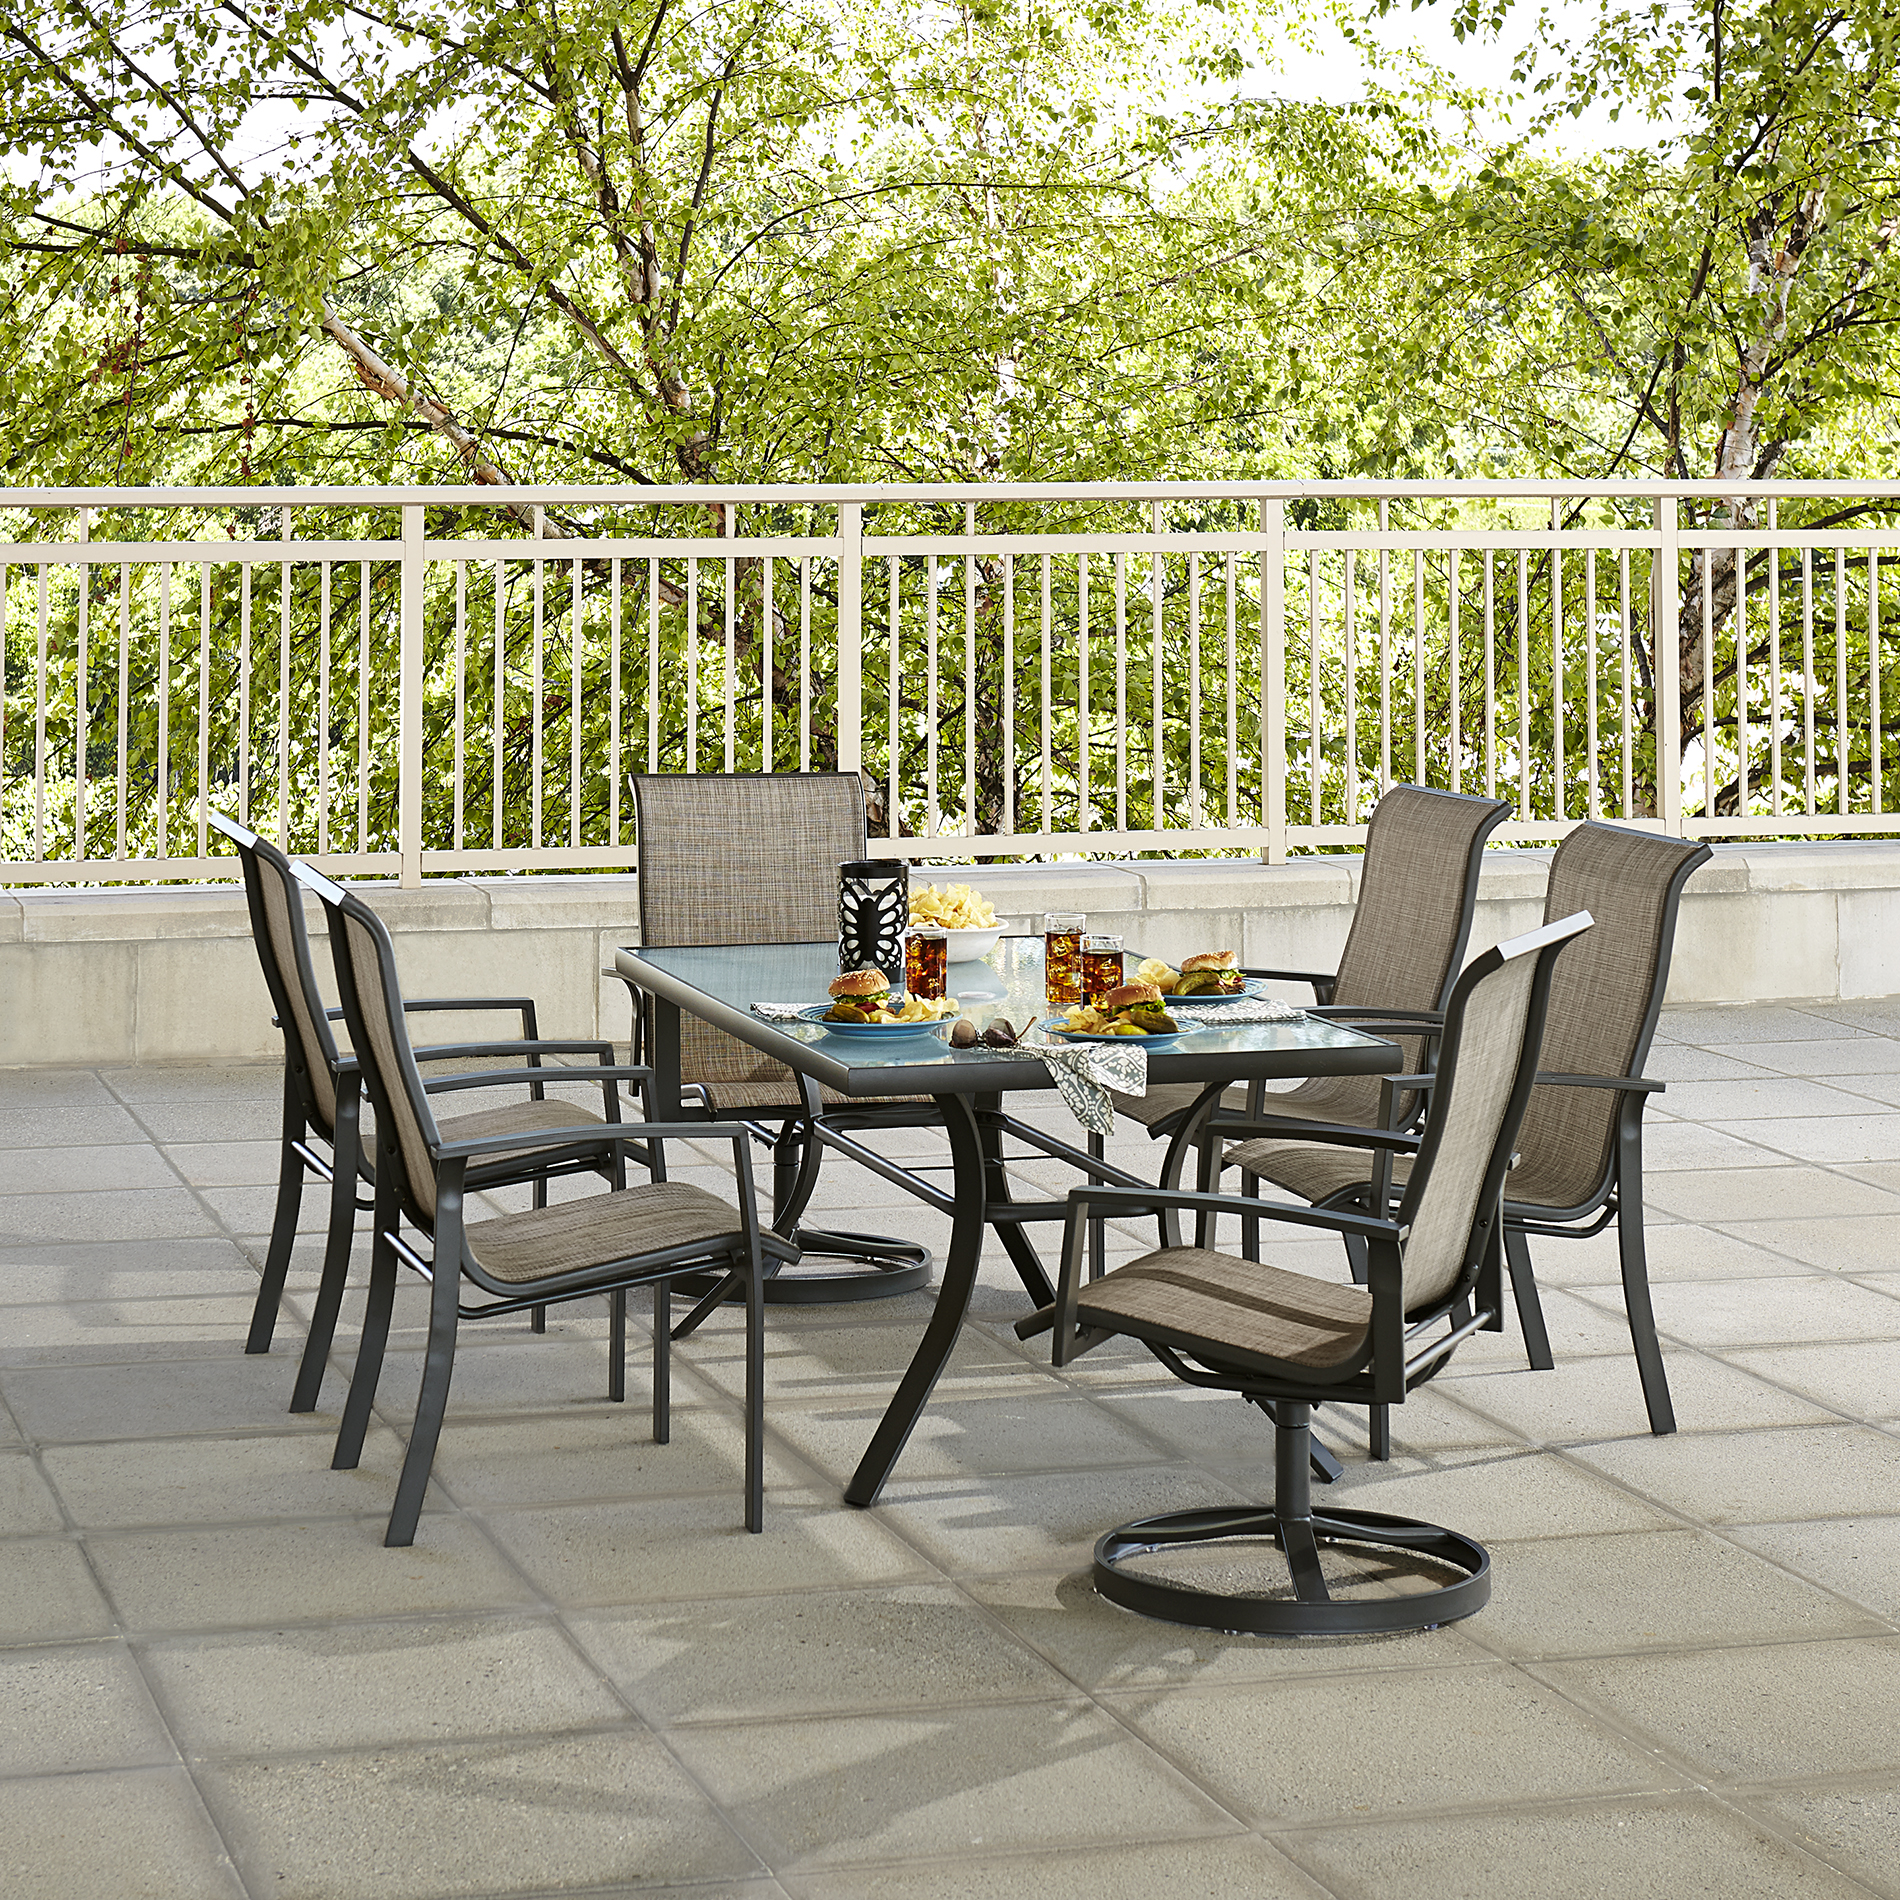 Kmart Dining Chairs Hoffman 6 Dining Patio Chairs Kmart